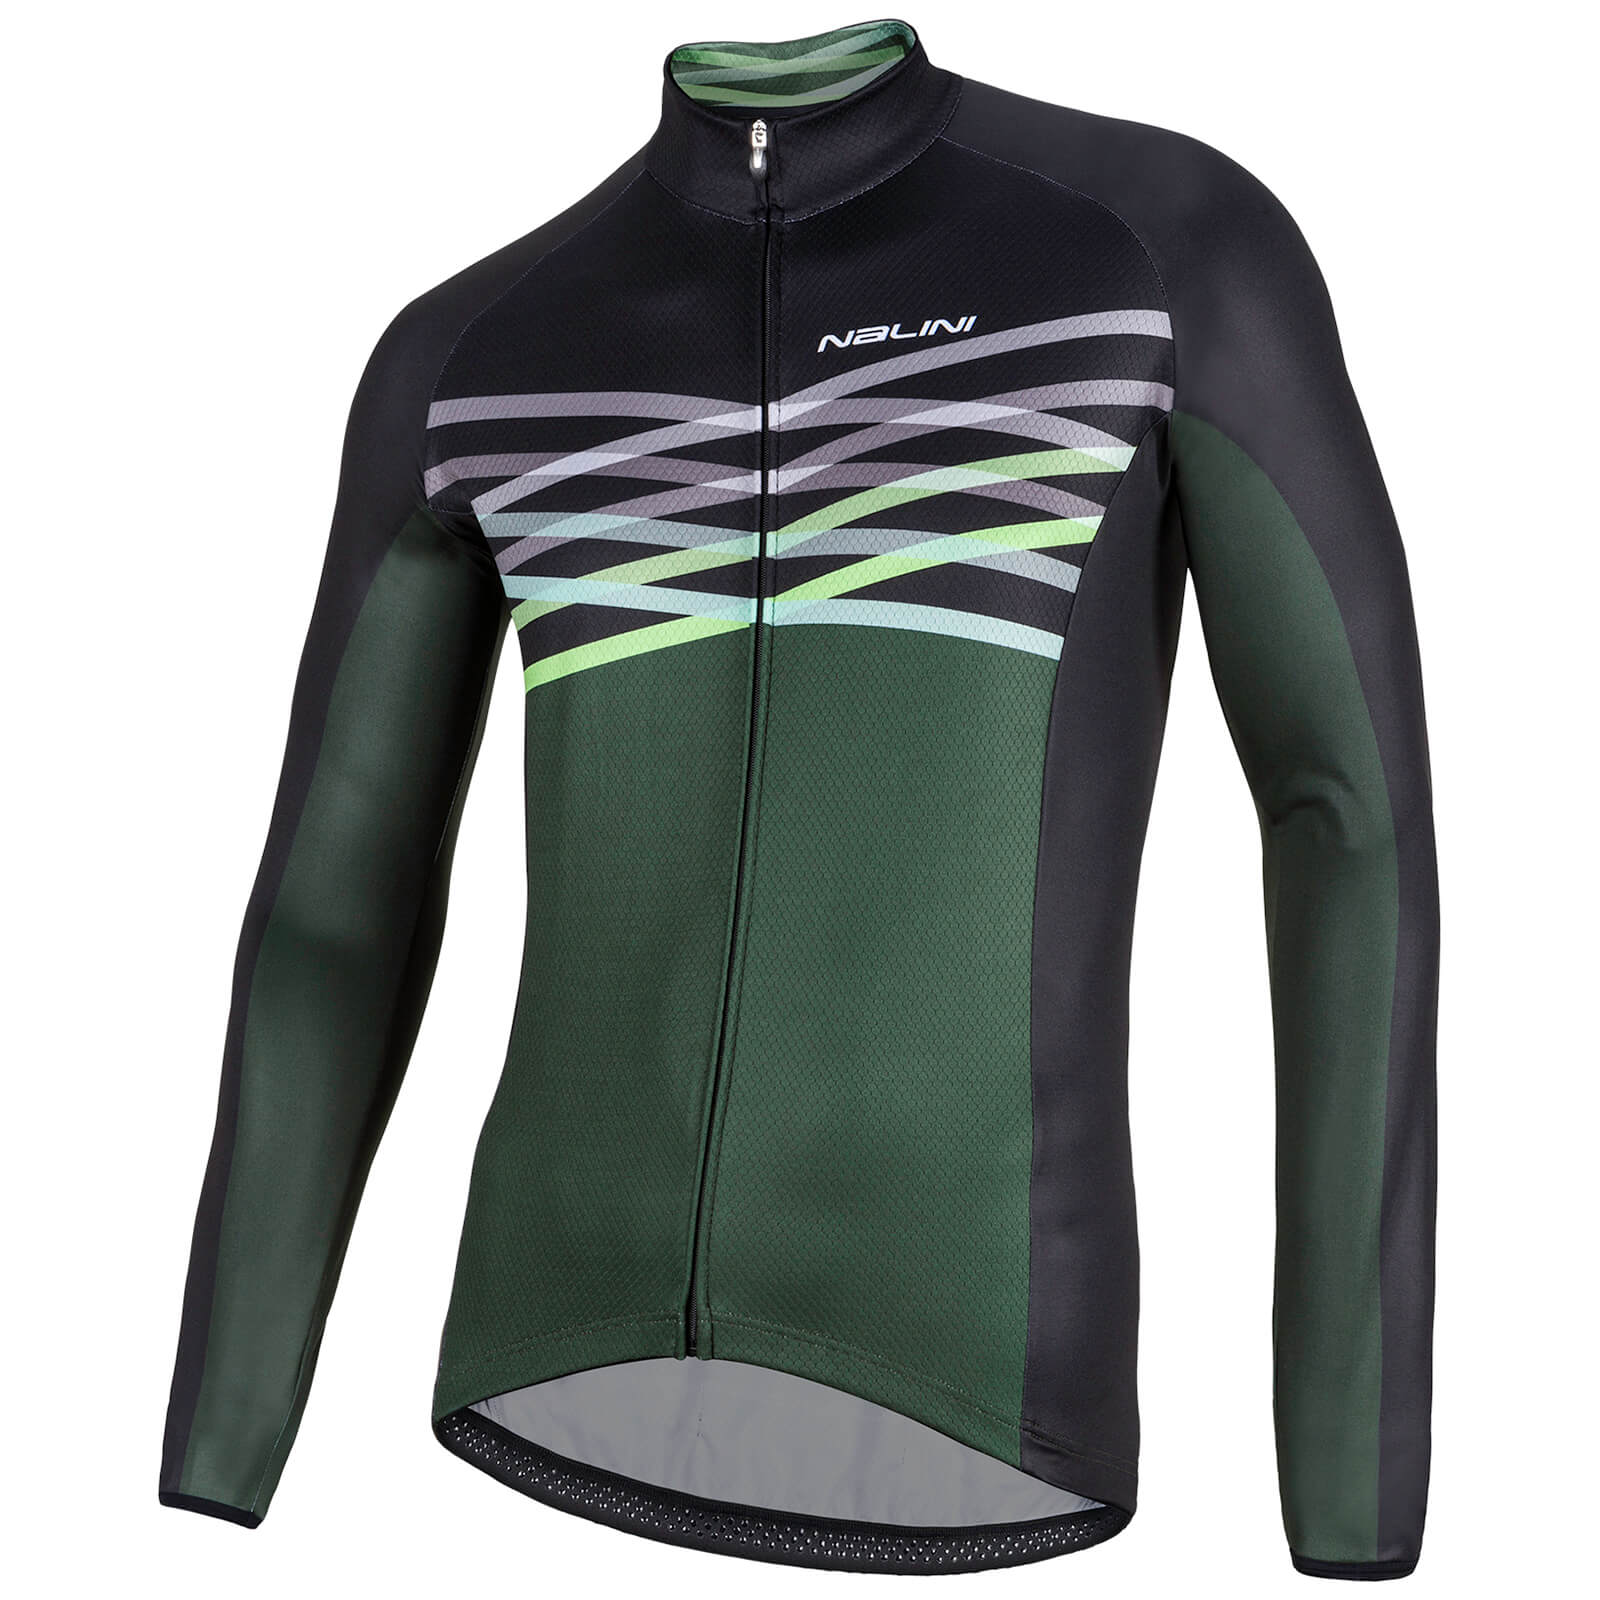 Nalini Merak Long Sleeve Jersey - Green/Black